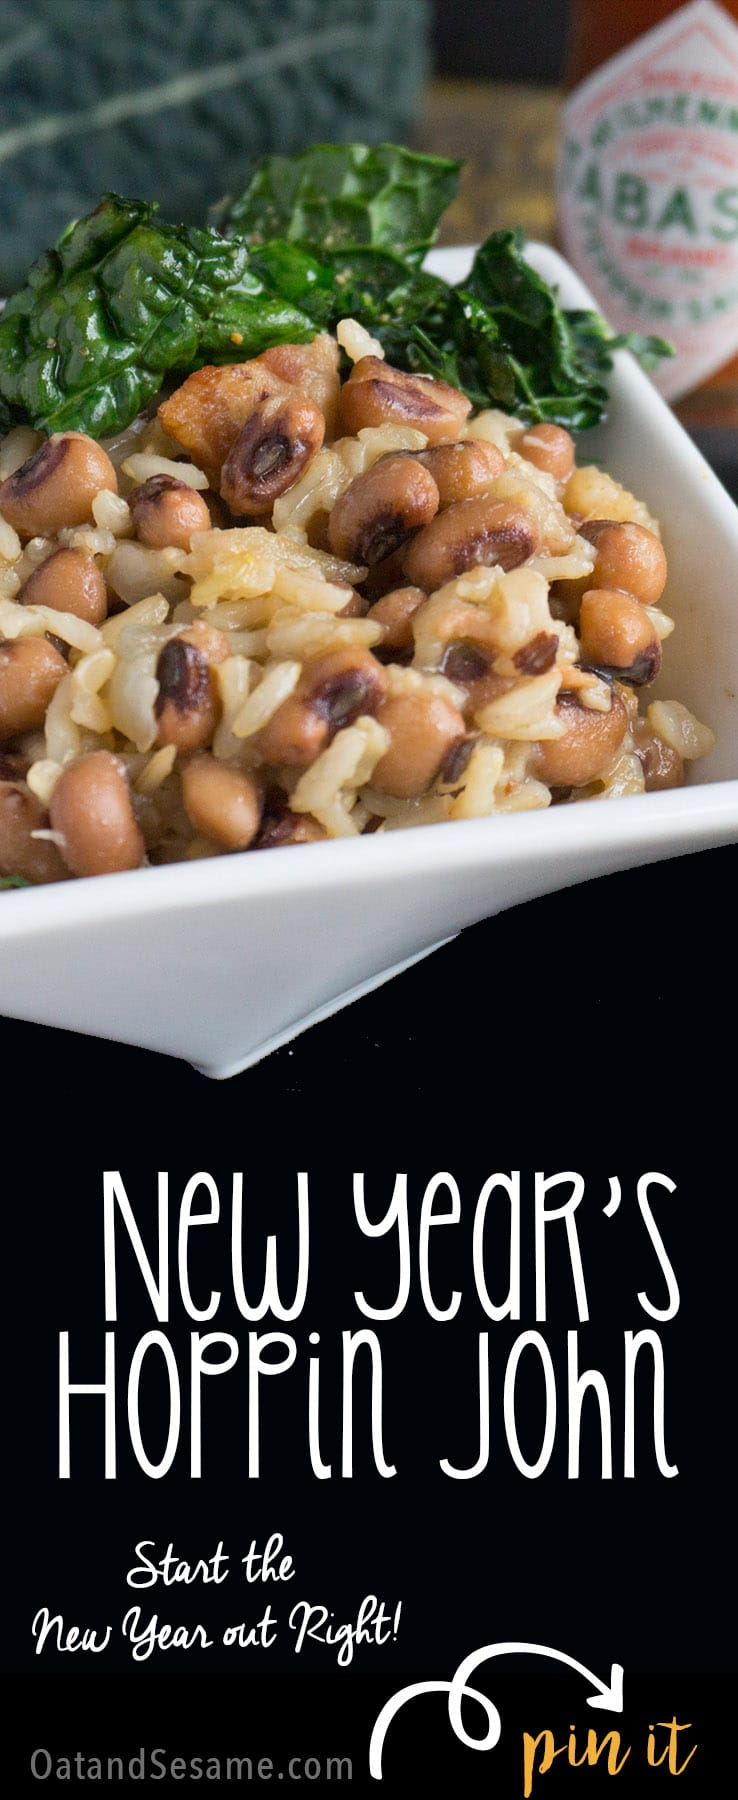 This Traditional New Year's Day Hoppin' John recipe is both delicious and easy to make! Black Eyed Peas, Brown Rice, Bacon and Greens - Start your year off with a bit of Southern luck! | #SOUTHERNRECIPES | #NEWYEARS | #Recipes at OatandSesame.com